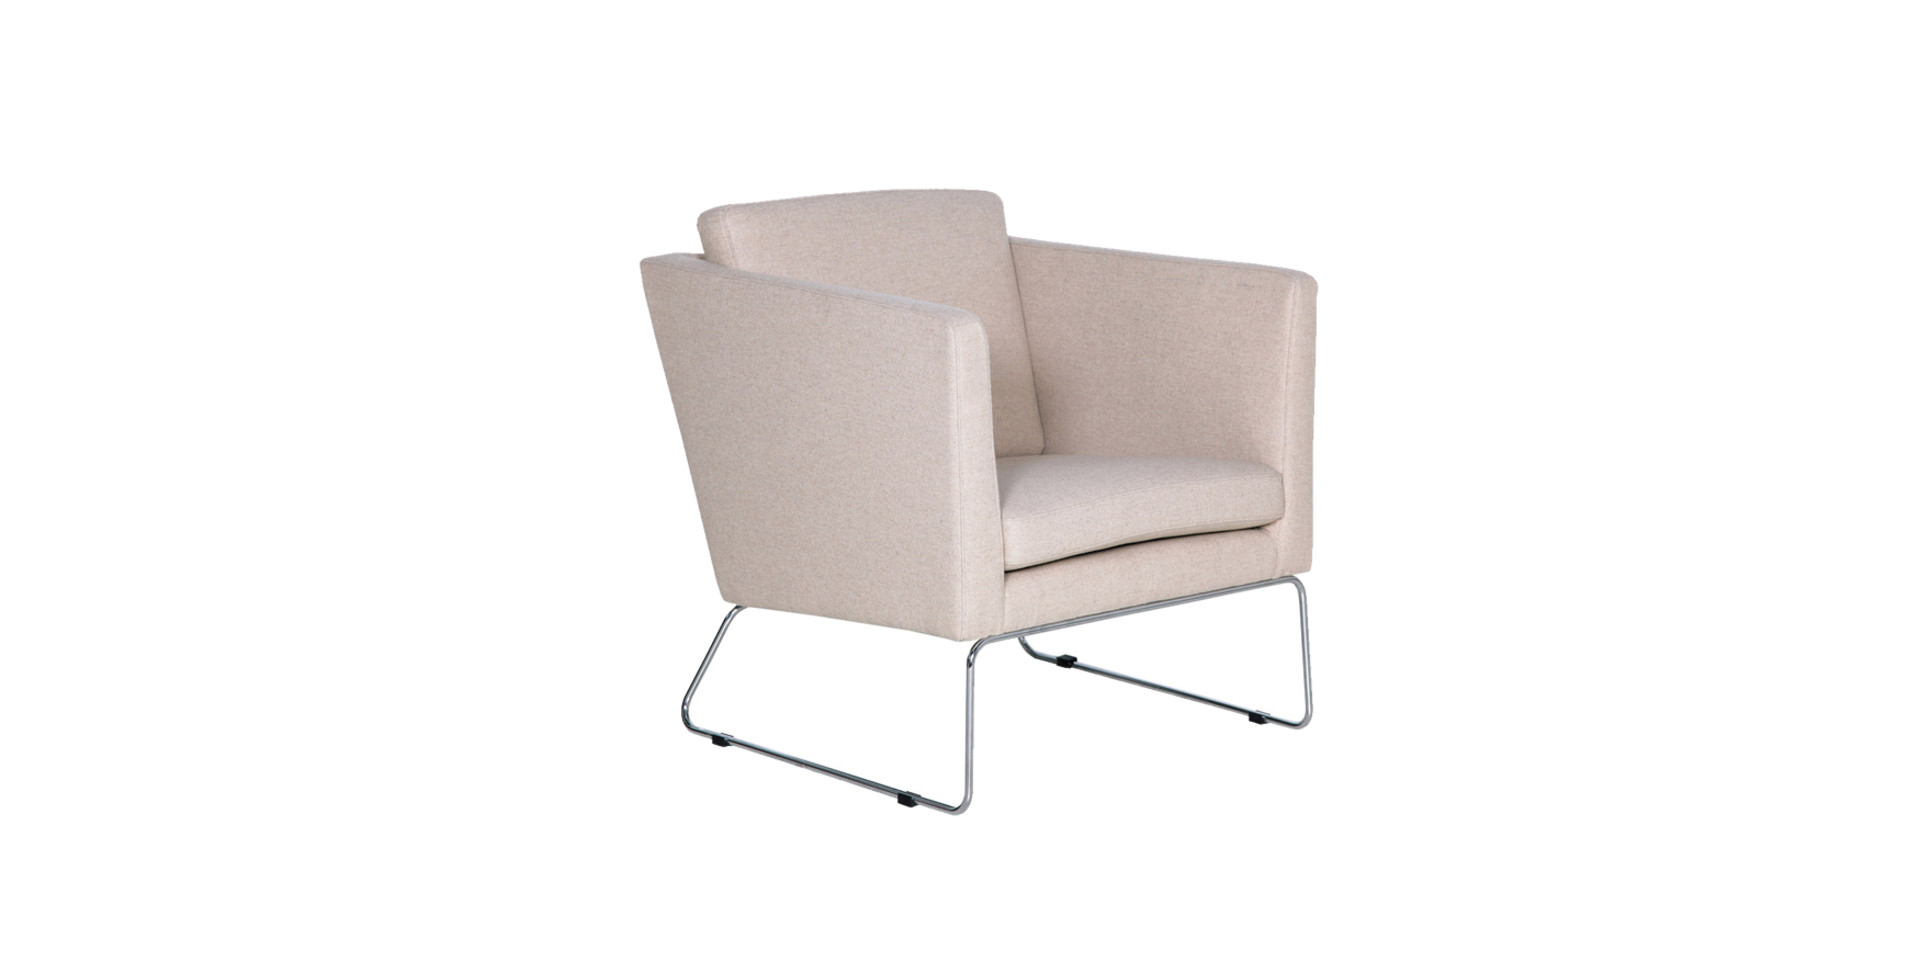 sits-clark-fauteuil-armchair_panno1037_oatmeal_marl_2